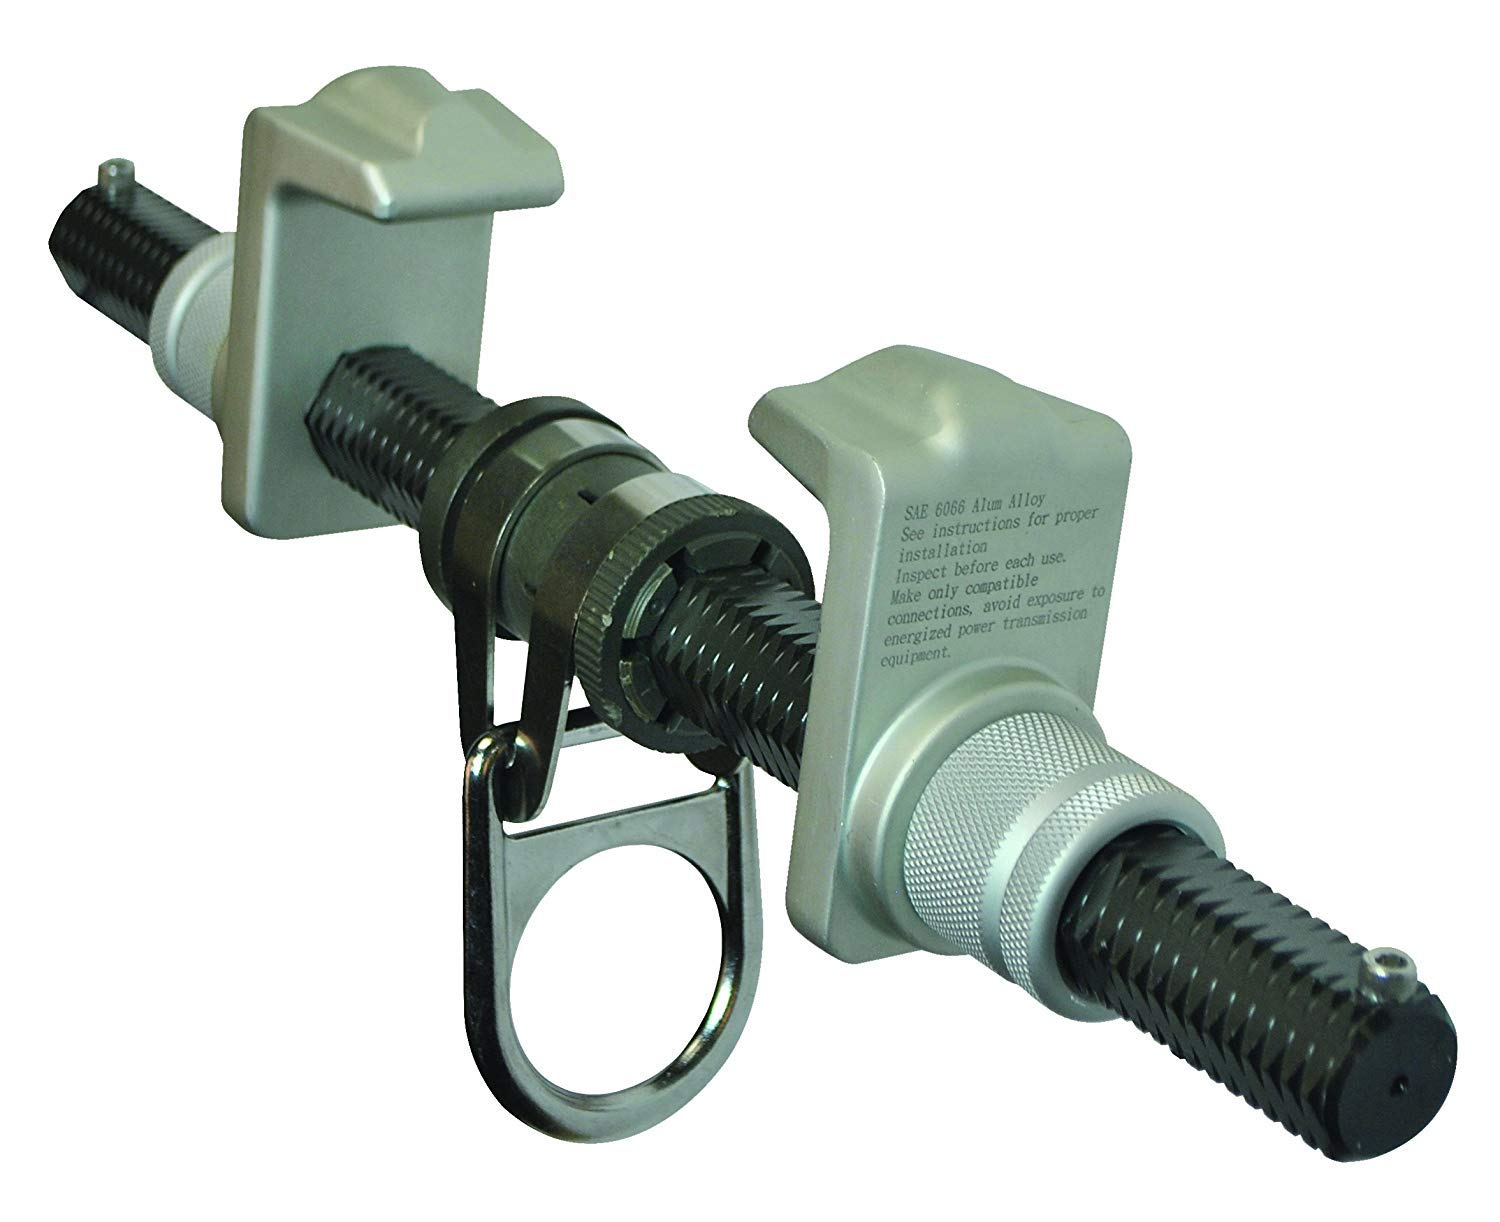 FallTech 7533 Steel, Trailing Beam Clamp Steel - Dual Adjustment for Centering on I-Beam, Aluminum Hex Bar and Jaws, 3'' to 13'', Natural by FallTech